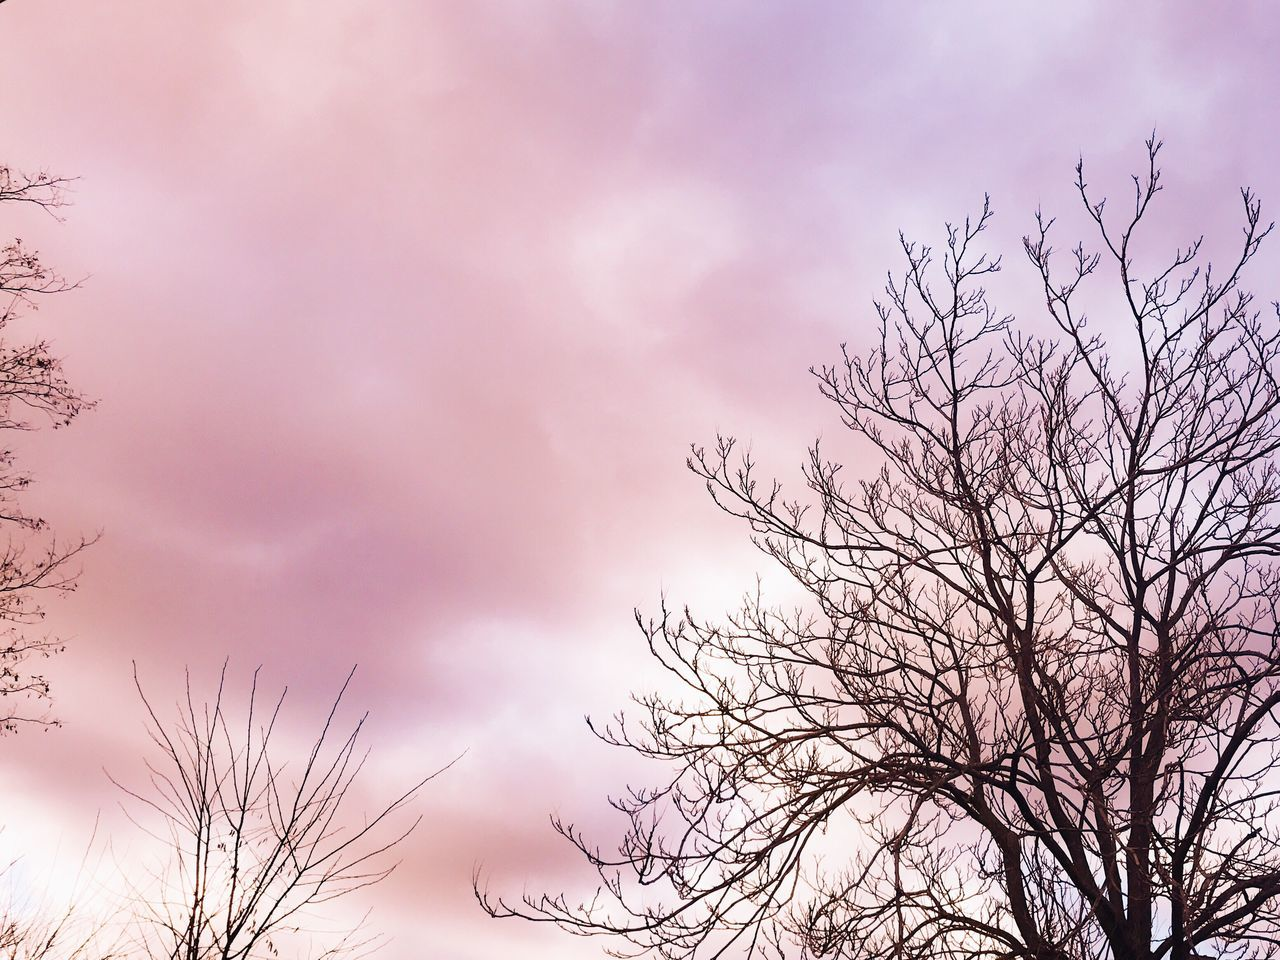 Sky Tree Nature Cloud - Sky Low Angle View Beauty In Nature No People Tranquility Outdoors Growth Branch Bare Tree Scenics Day Treetop Close-up